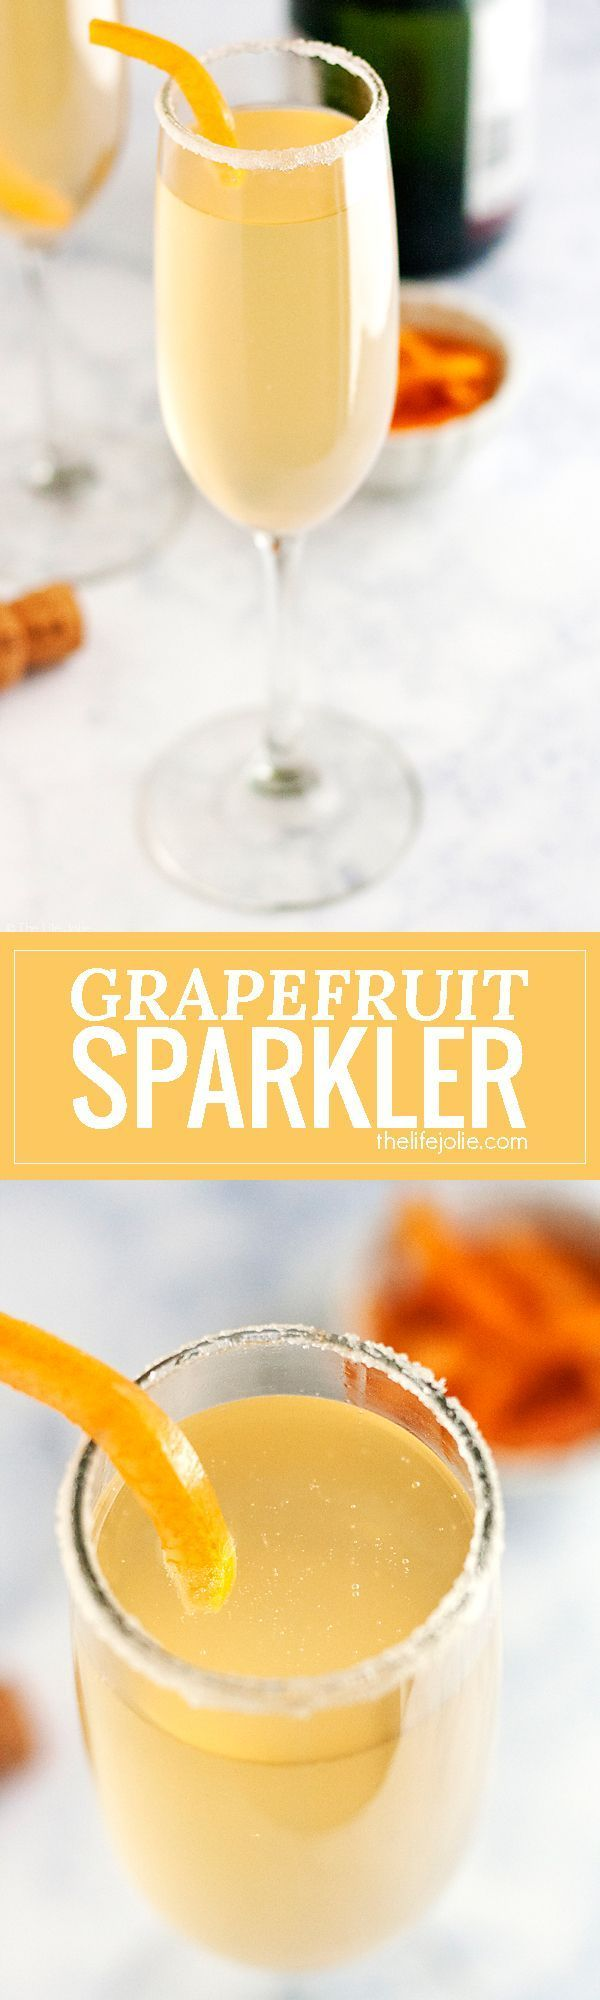 This Grapefruit Sparkler is a festive champagne cocktail! I love adult ...